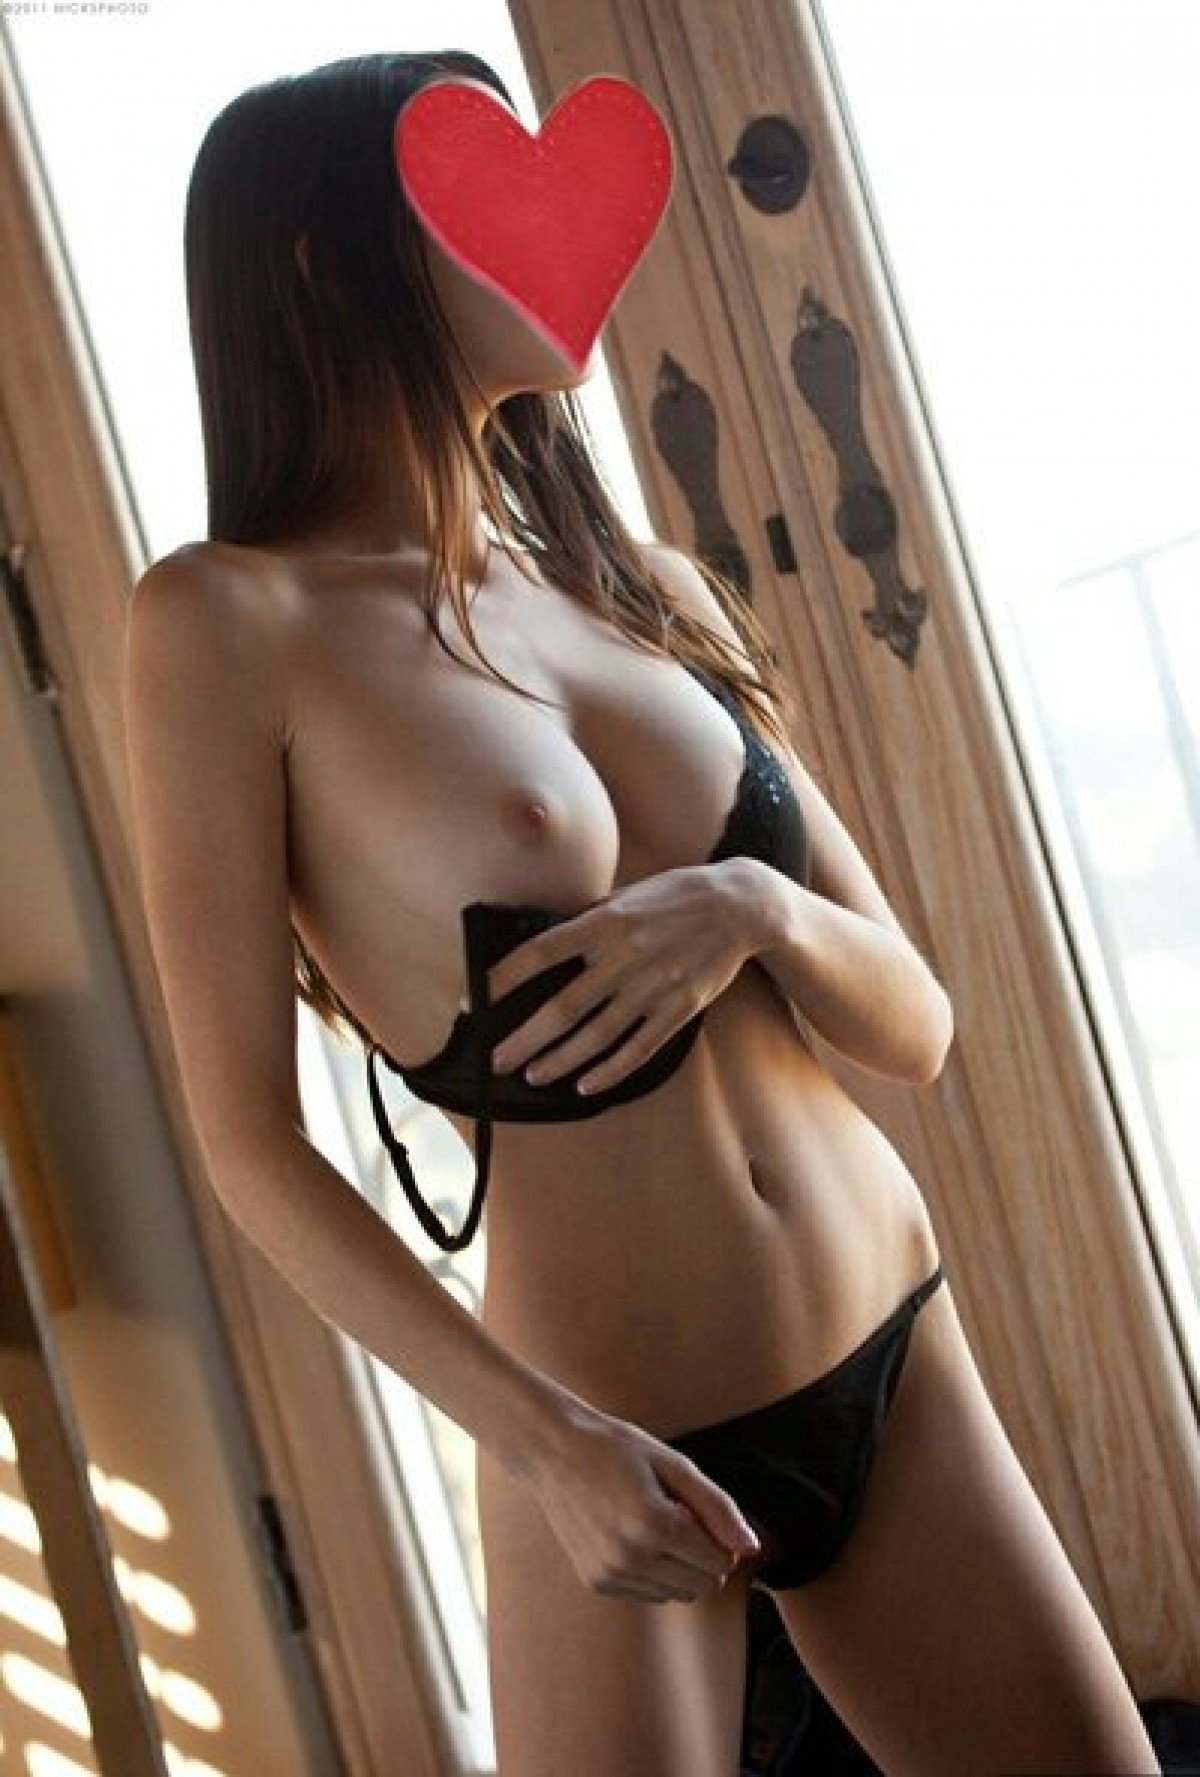 masterbate saigon independent escort